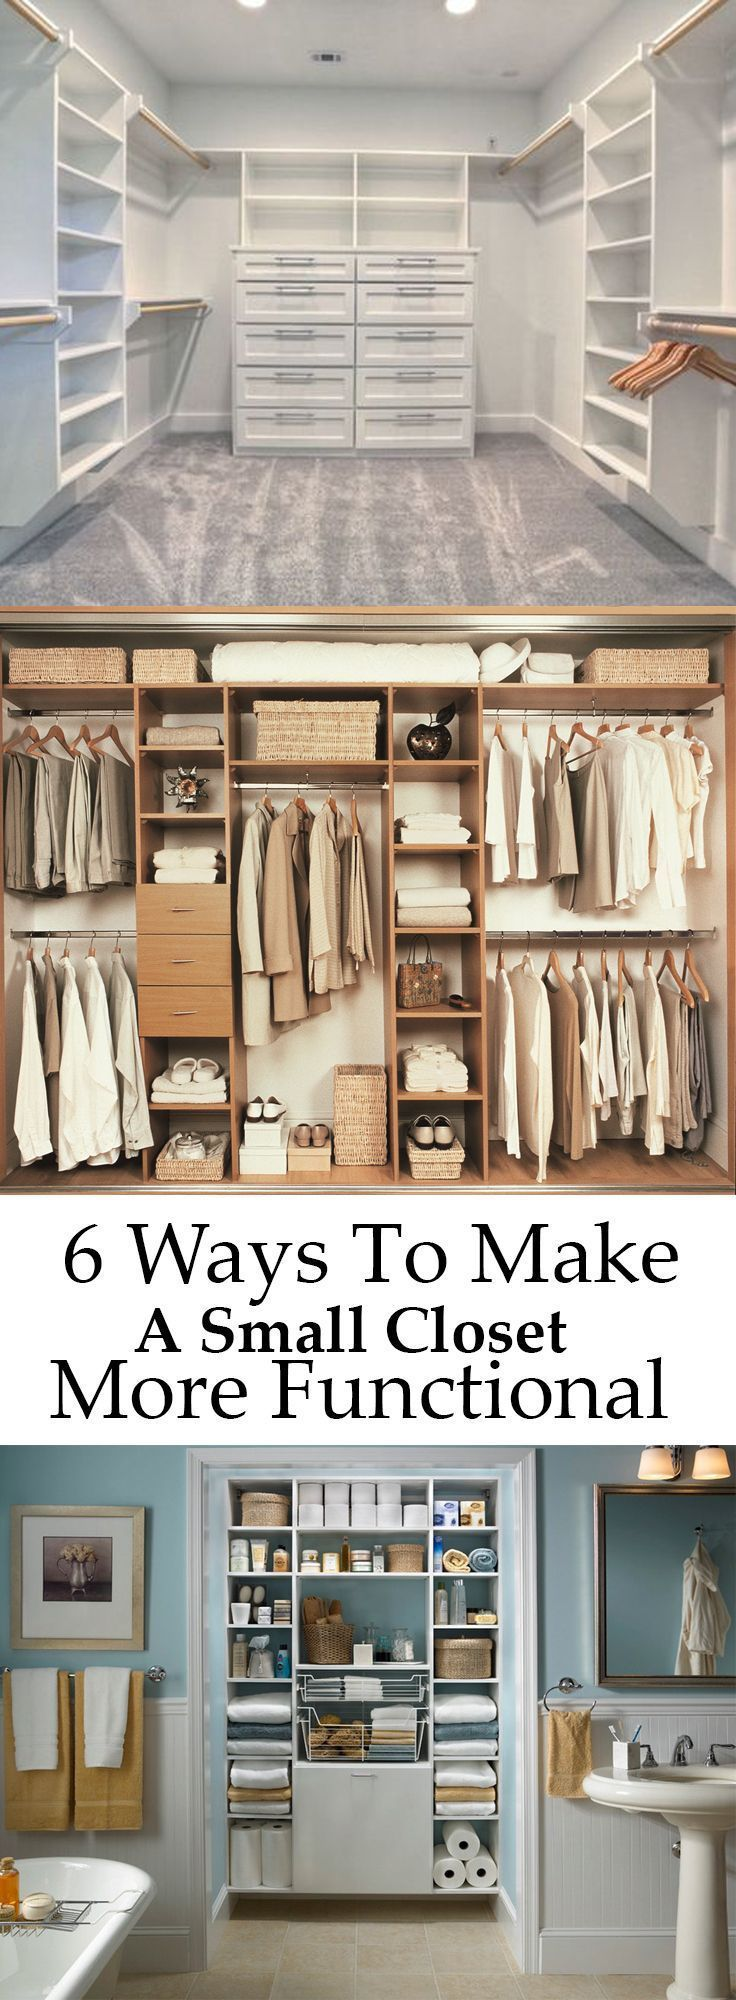 6 ways to make a small closet more functional diy plans - How to create a closet in a small bedroom ...